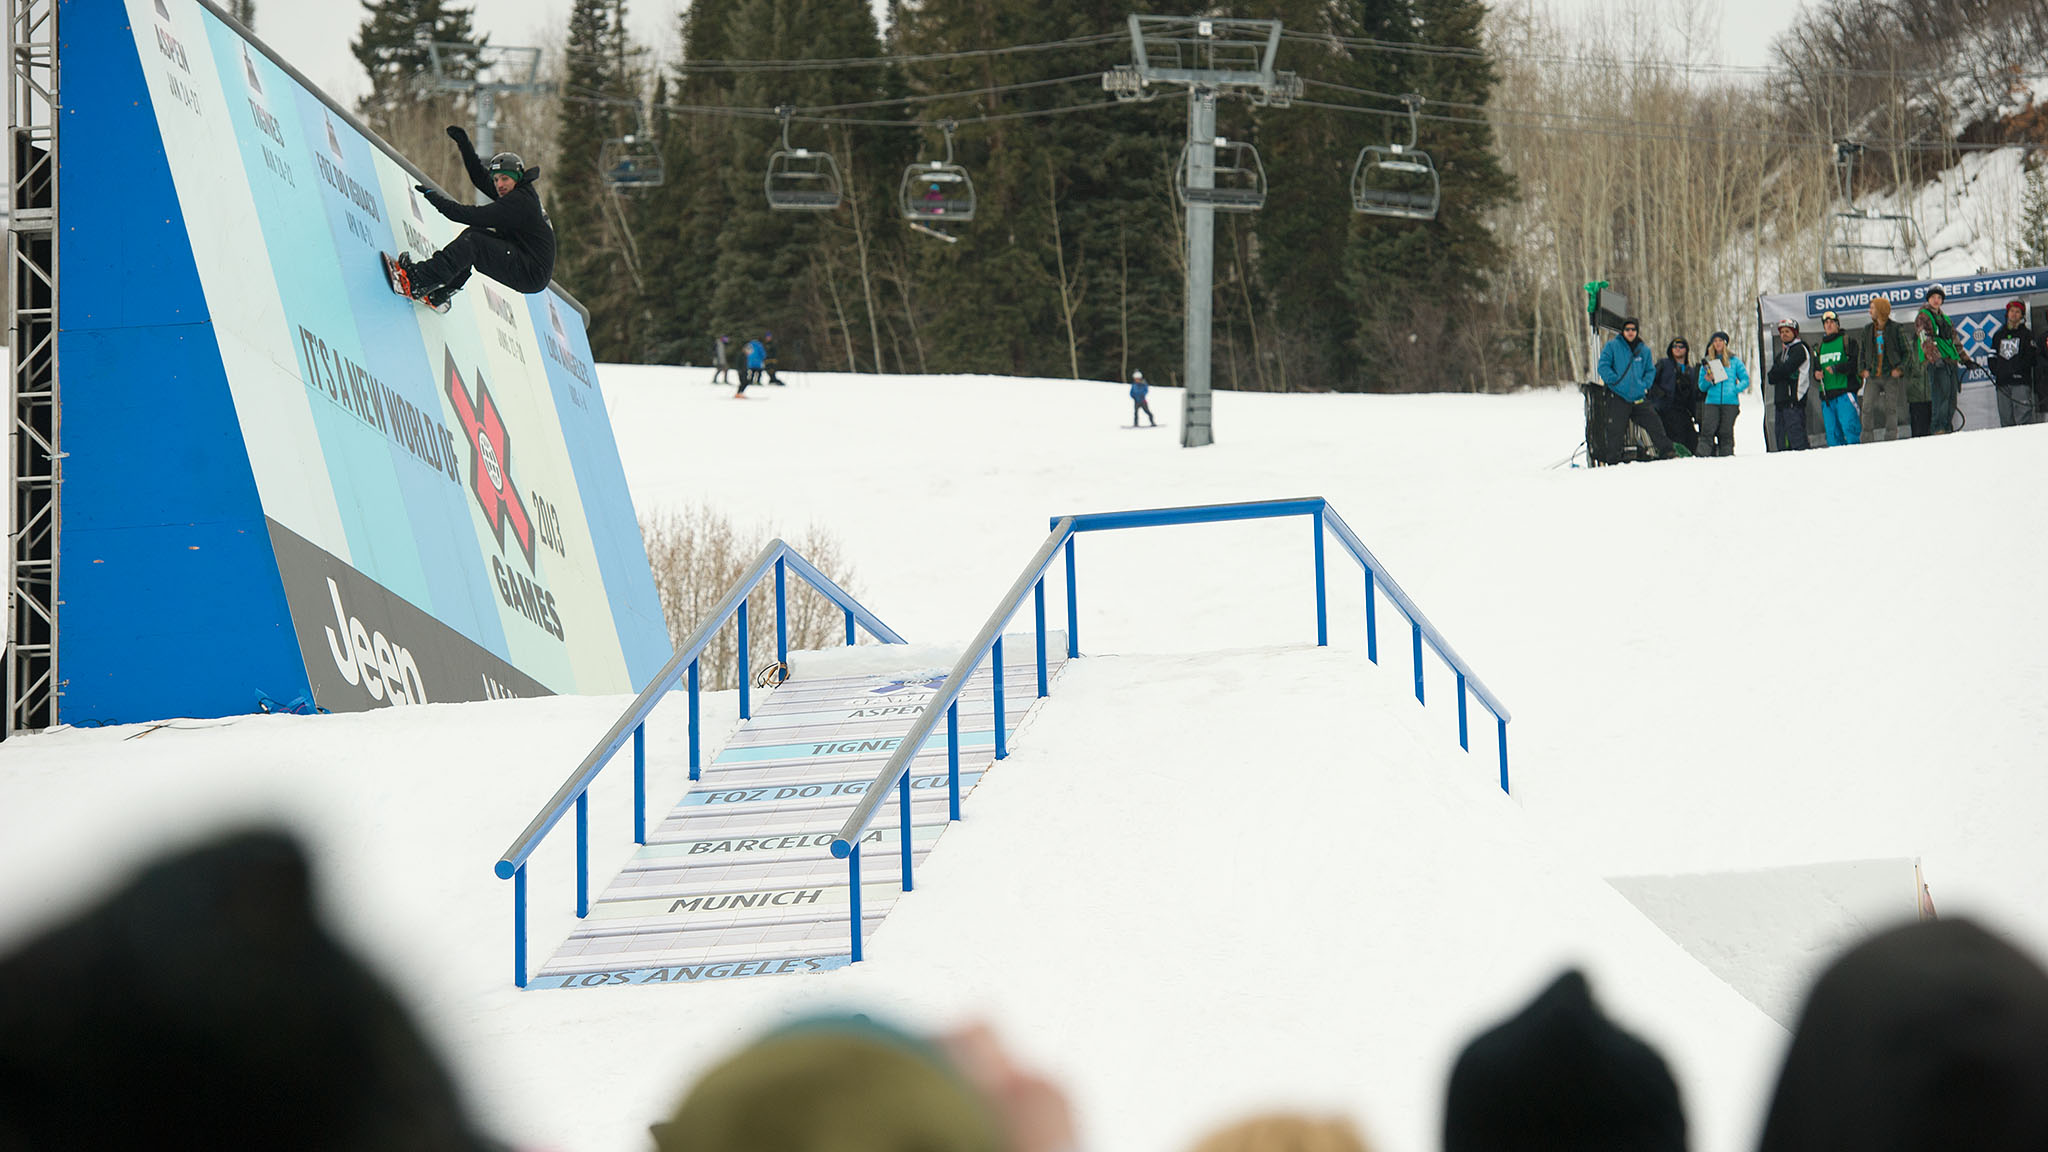 Louif Paradis rides the wall on the Snowboard Street course.